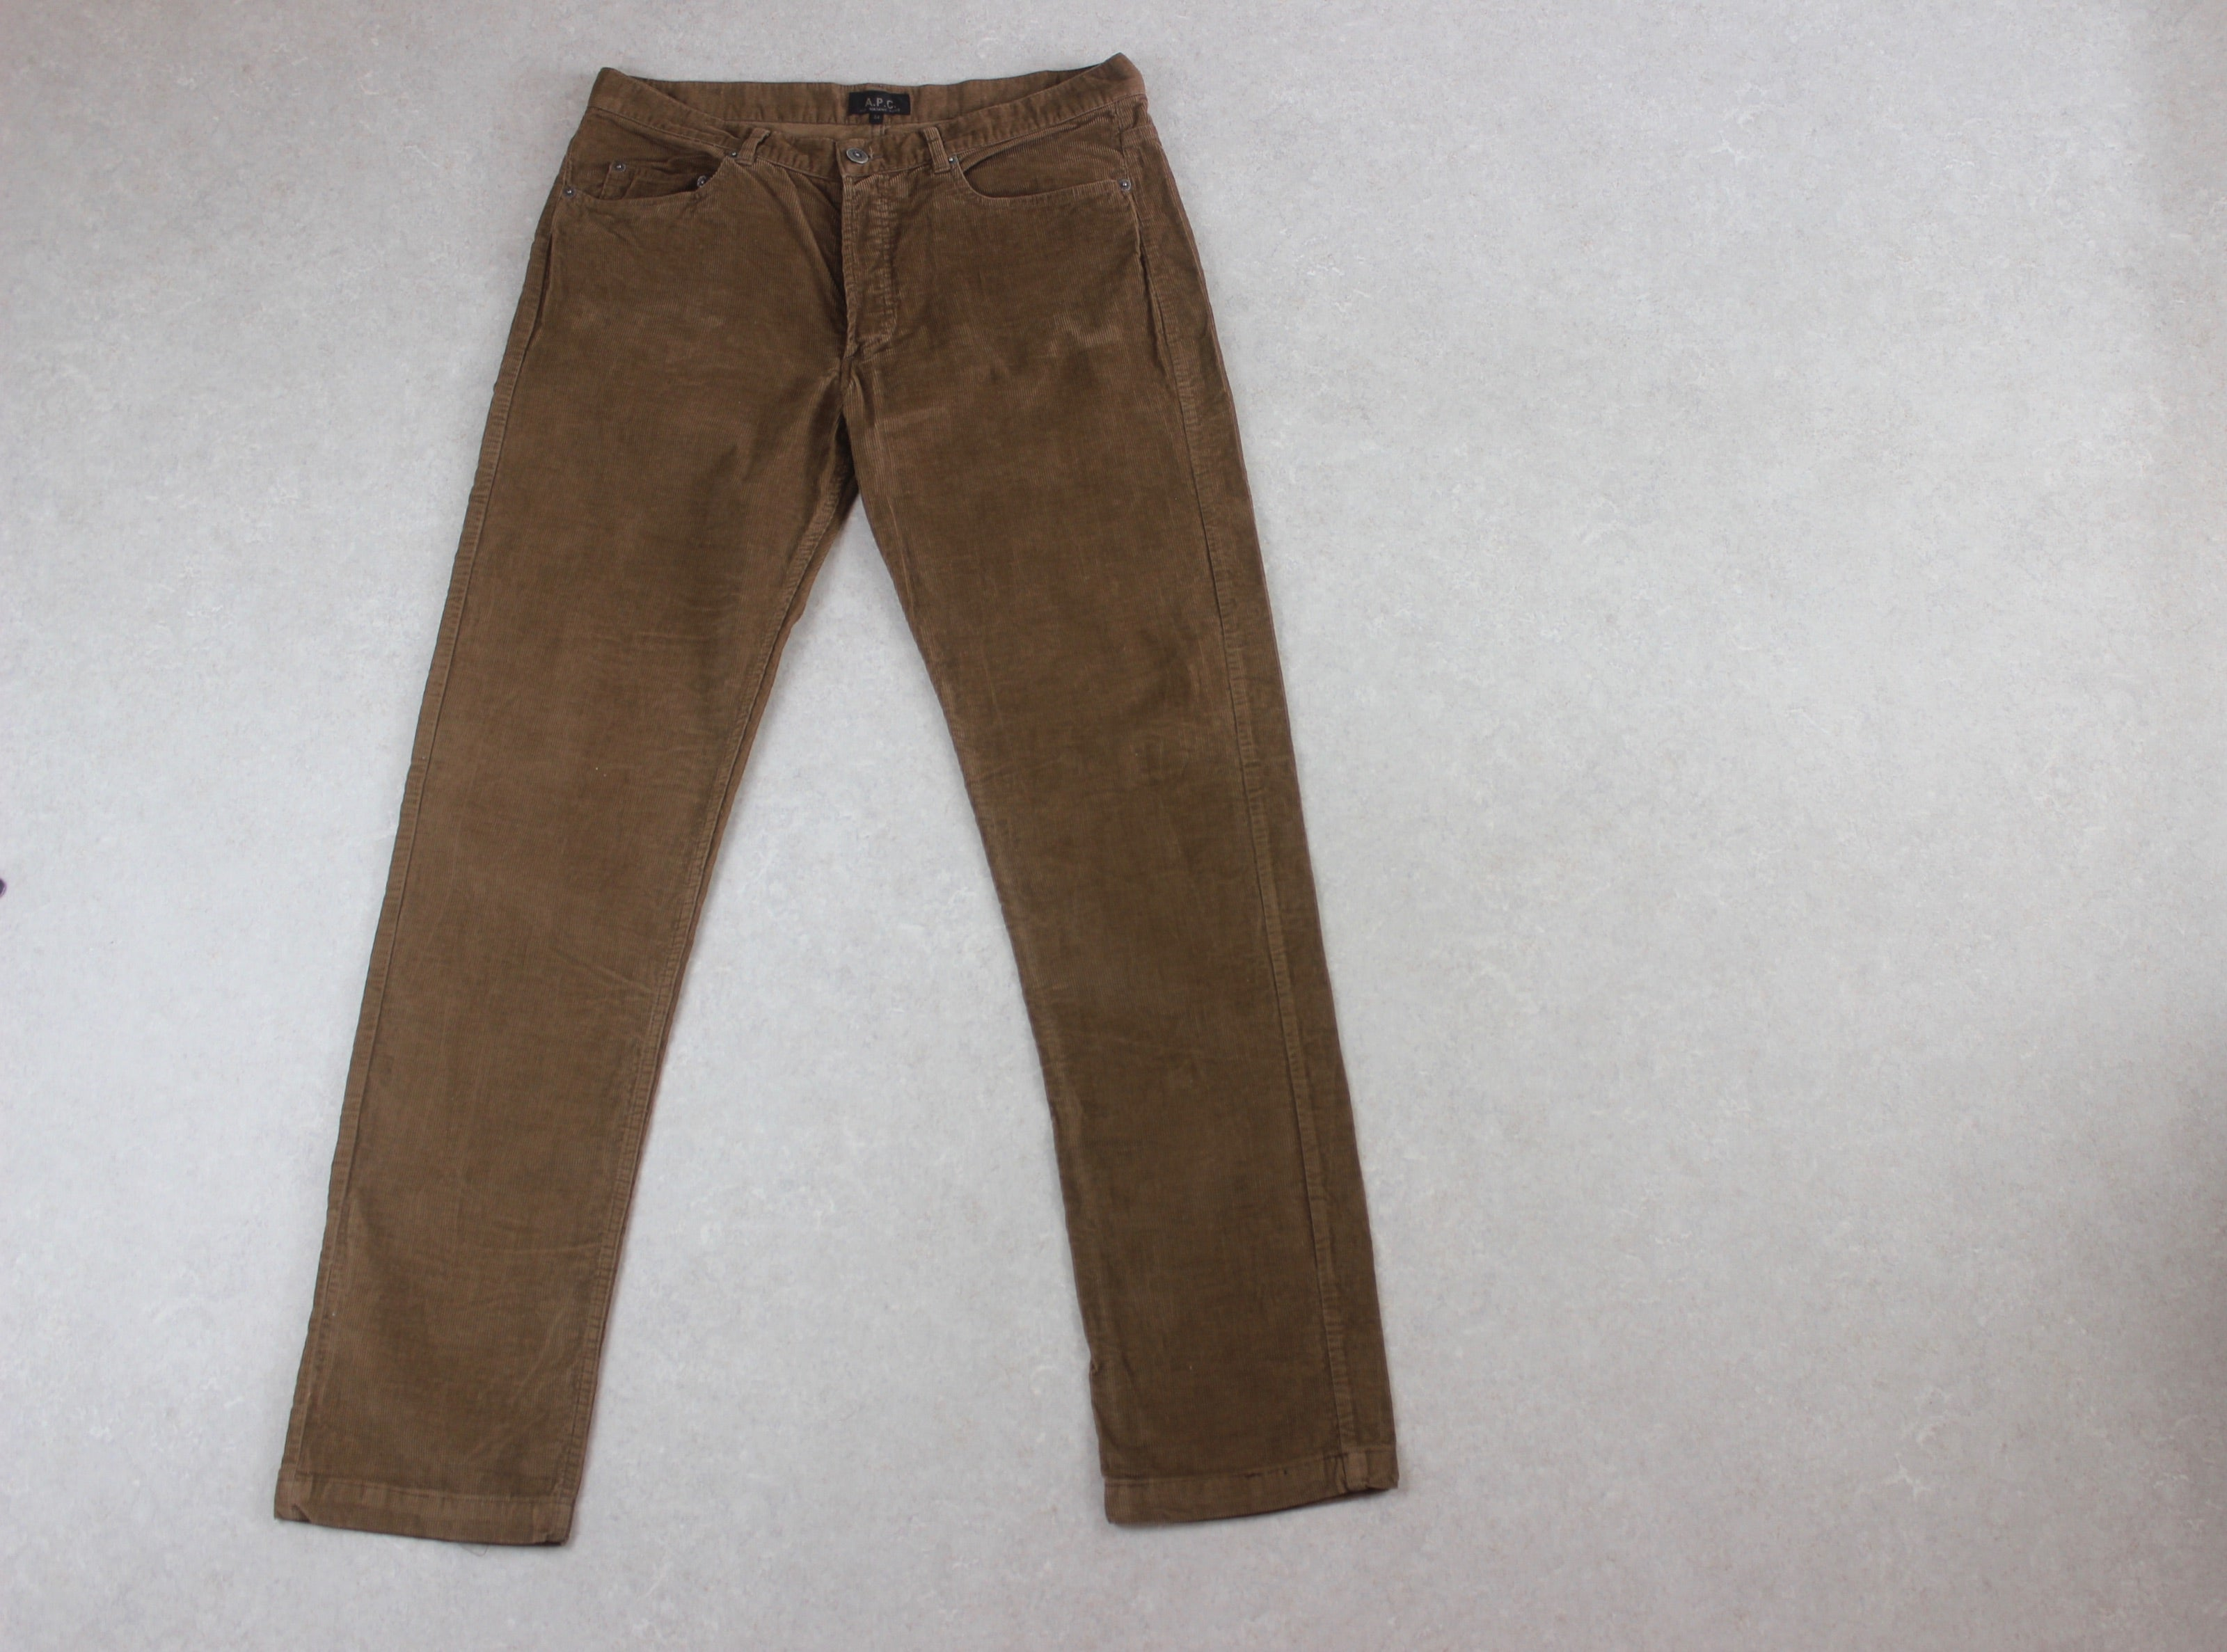 A.P.C. - Corduroy Trousers - Brown - 34